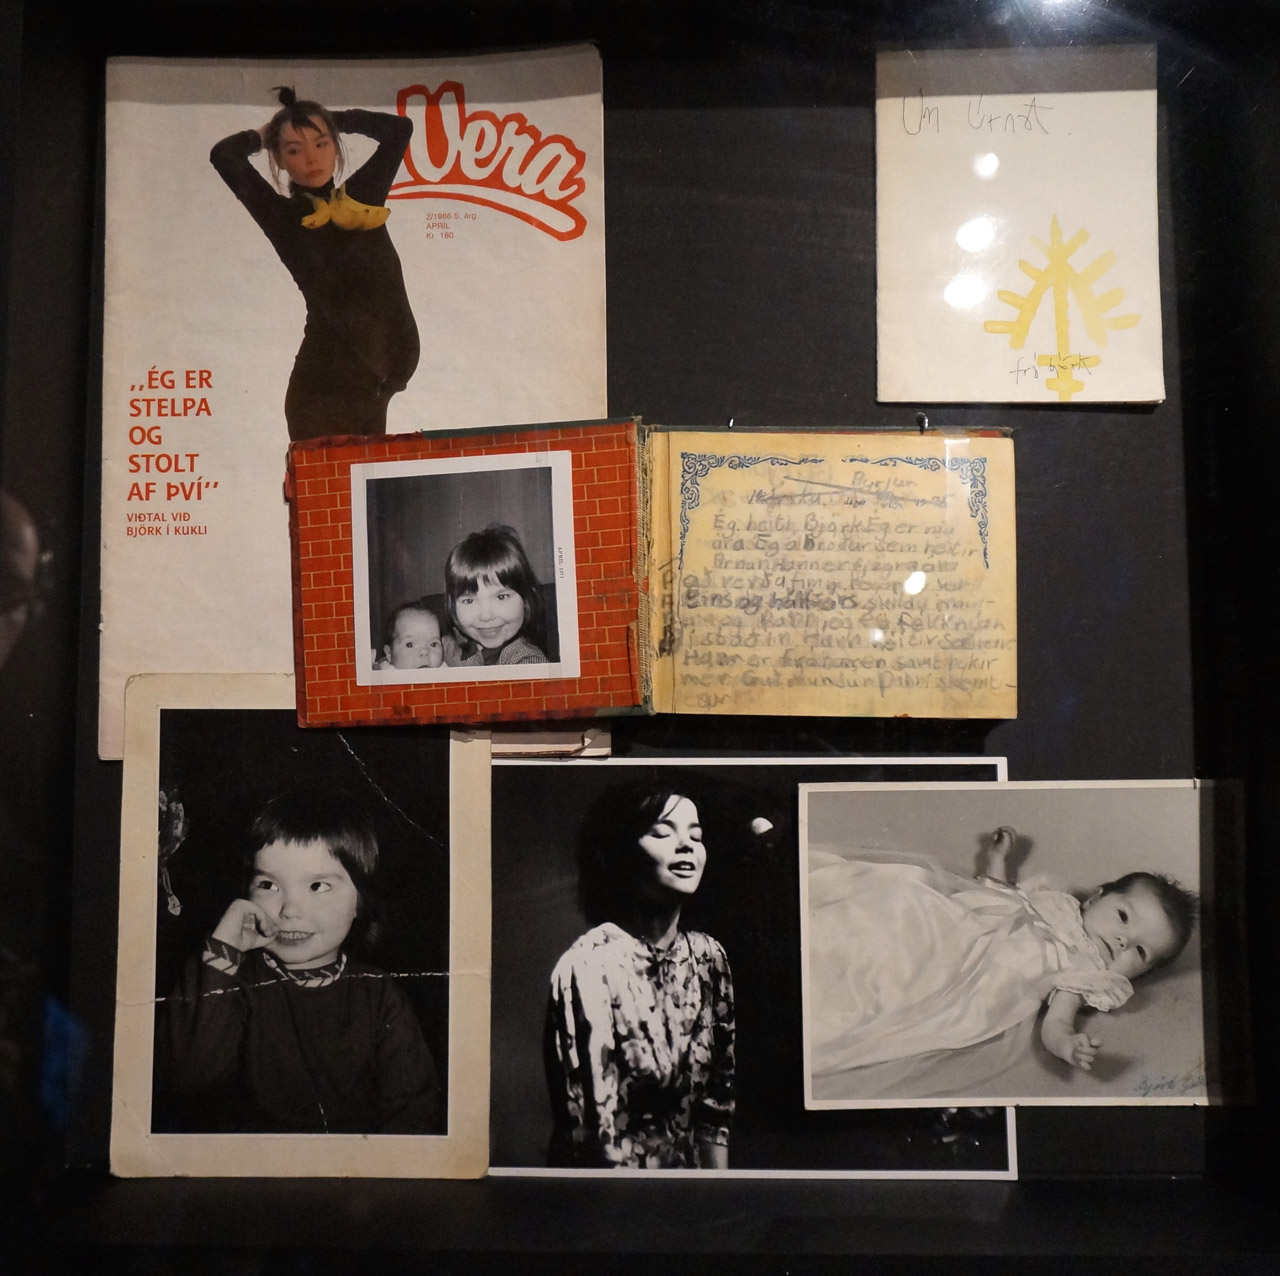 Björk ephemera and photos (photo by Jillian Steinhauer/Hyperallergic)